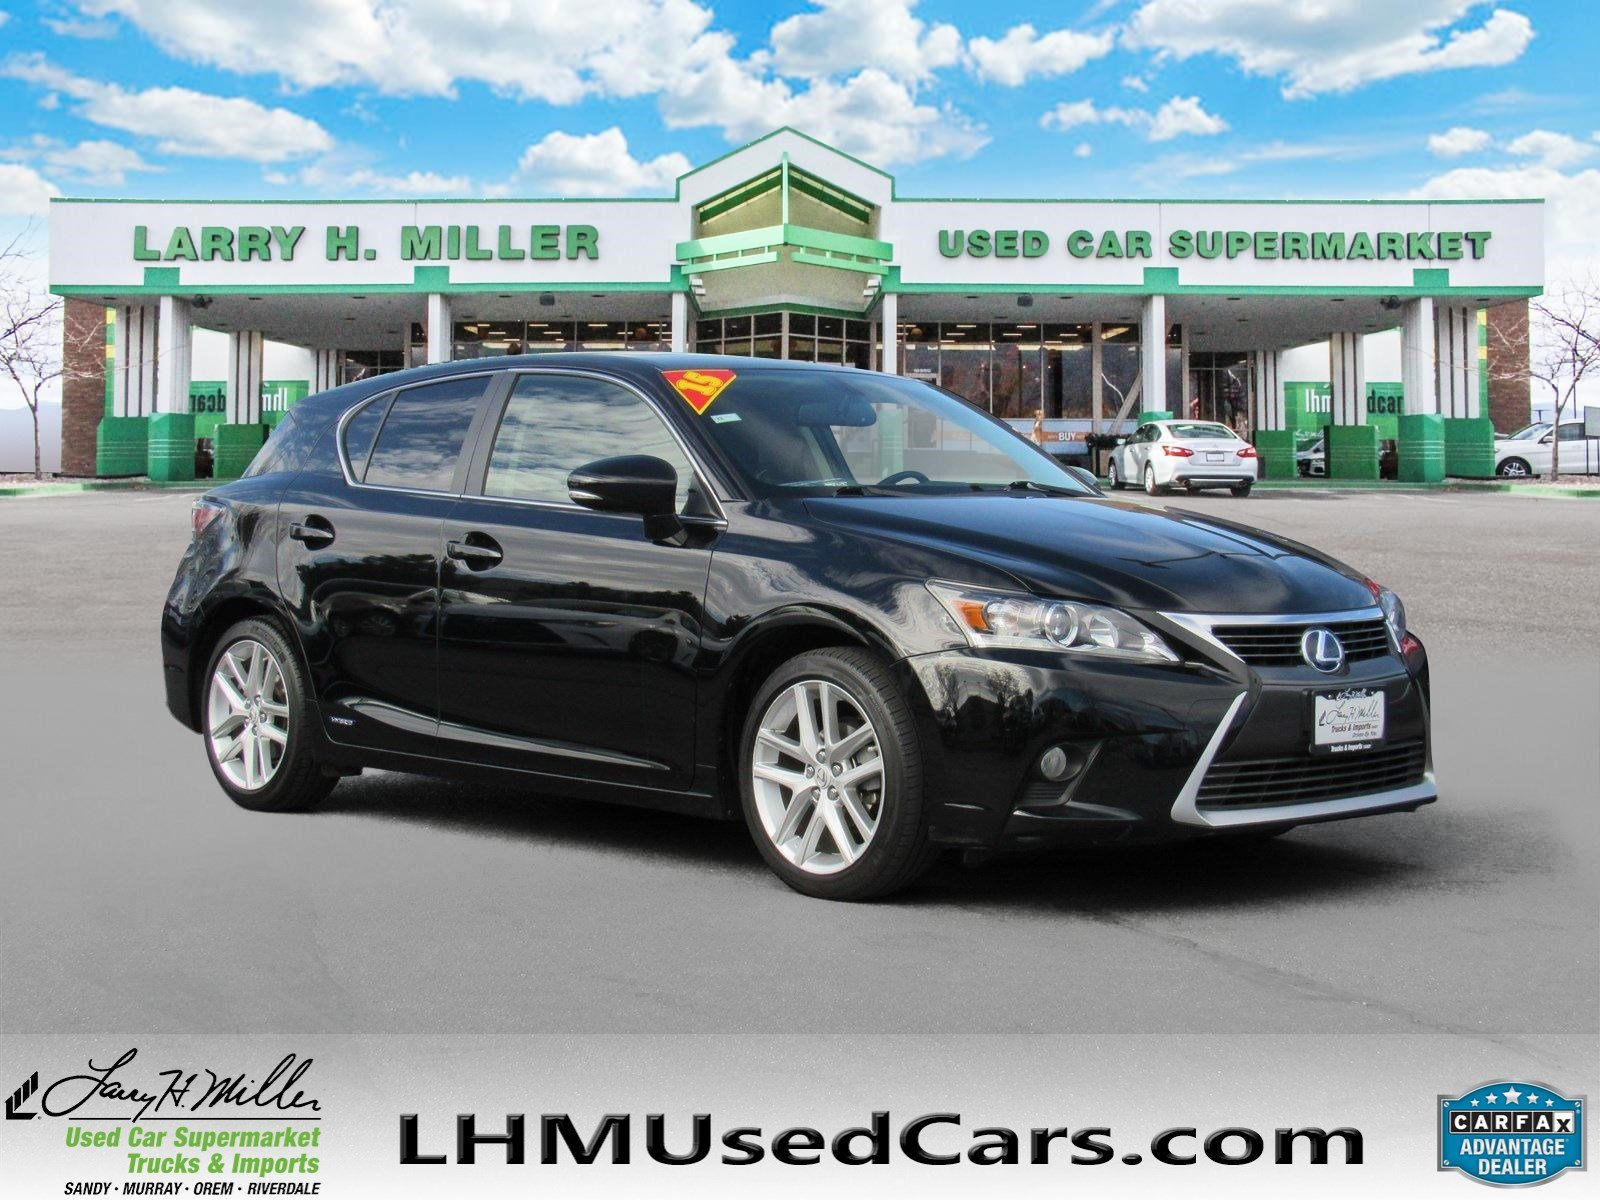 Larry H Miller Lexus U003eu003e Pre Owned 2015 Lexus CT 200h Hybrid Hatchback In